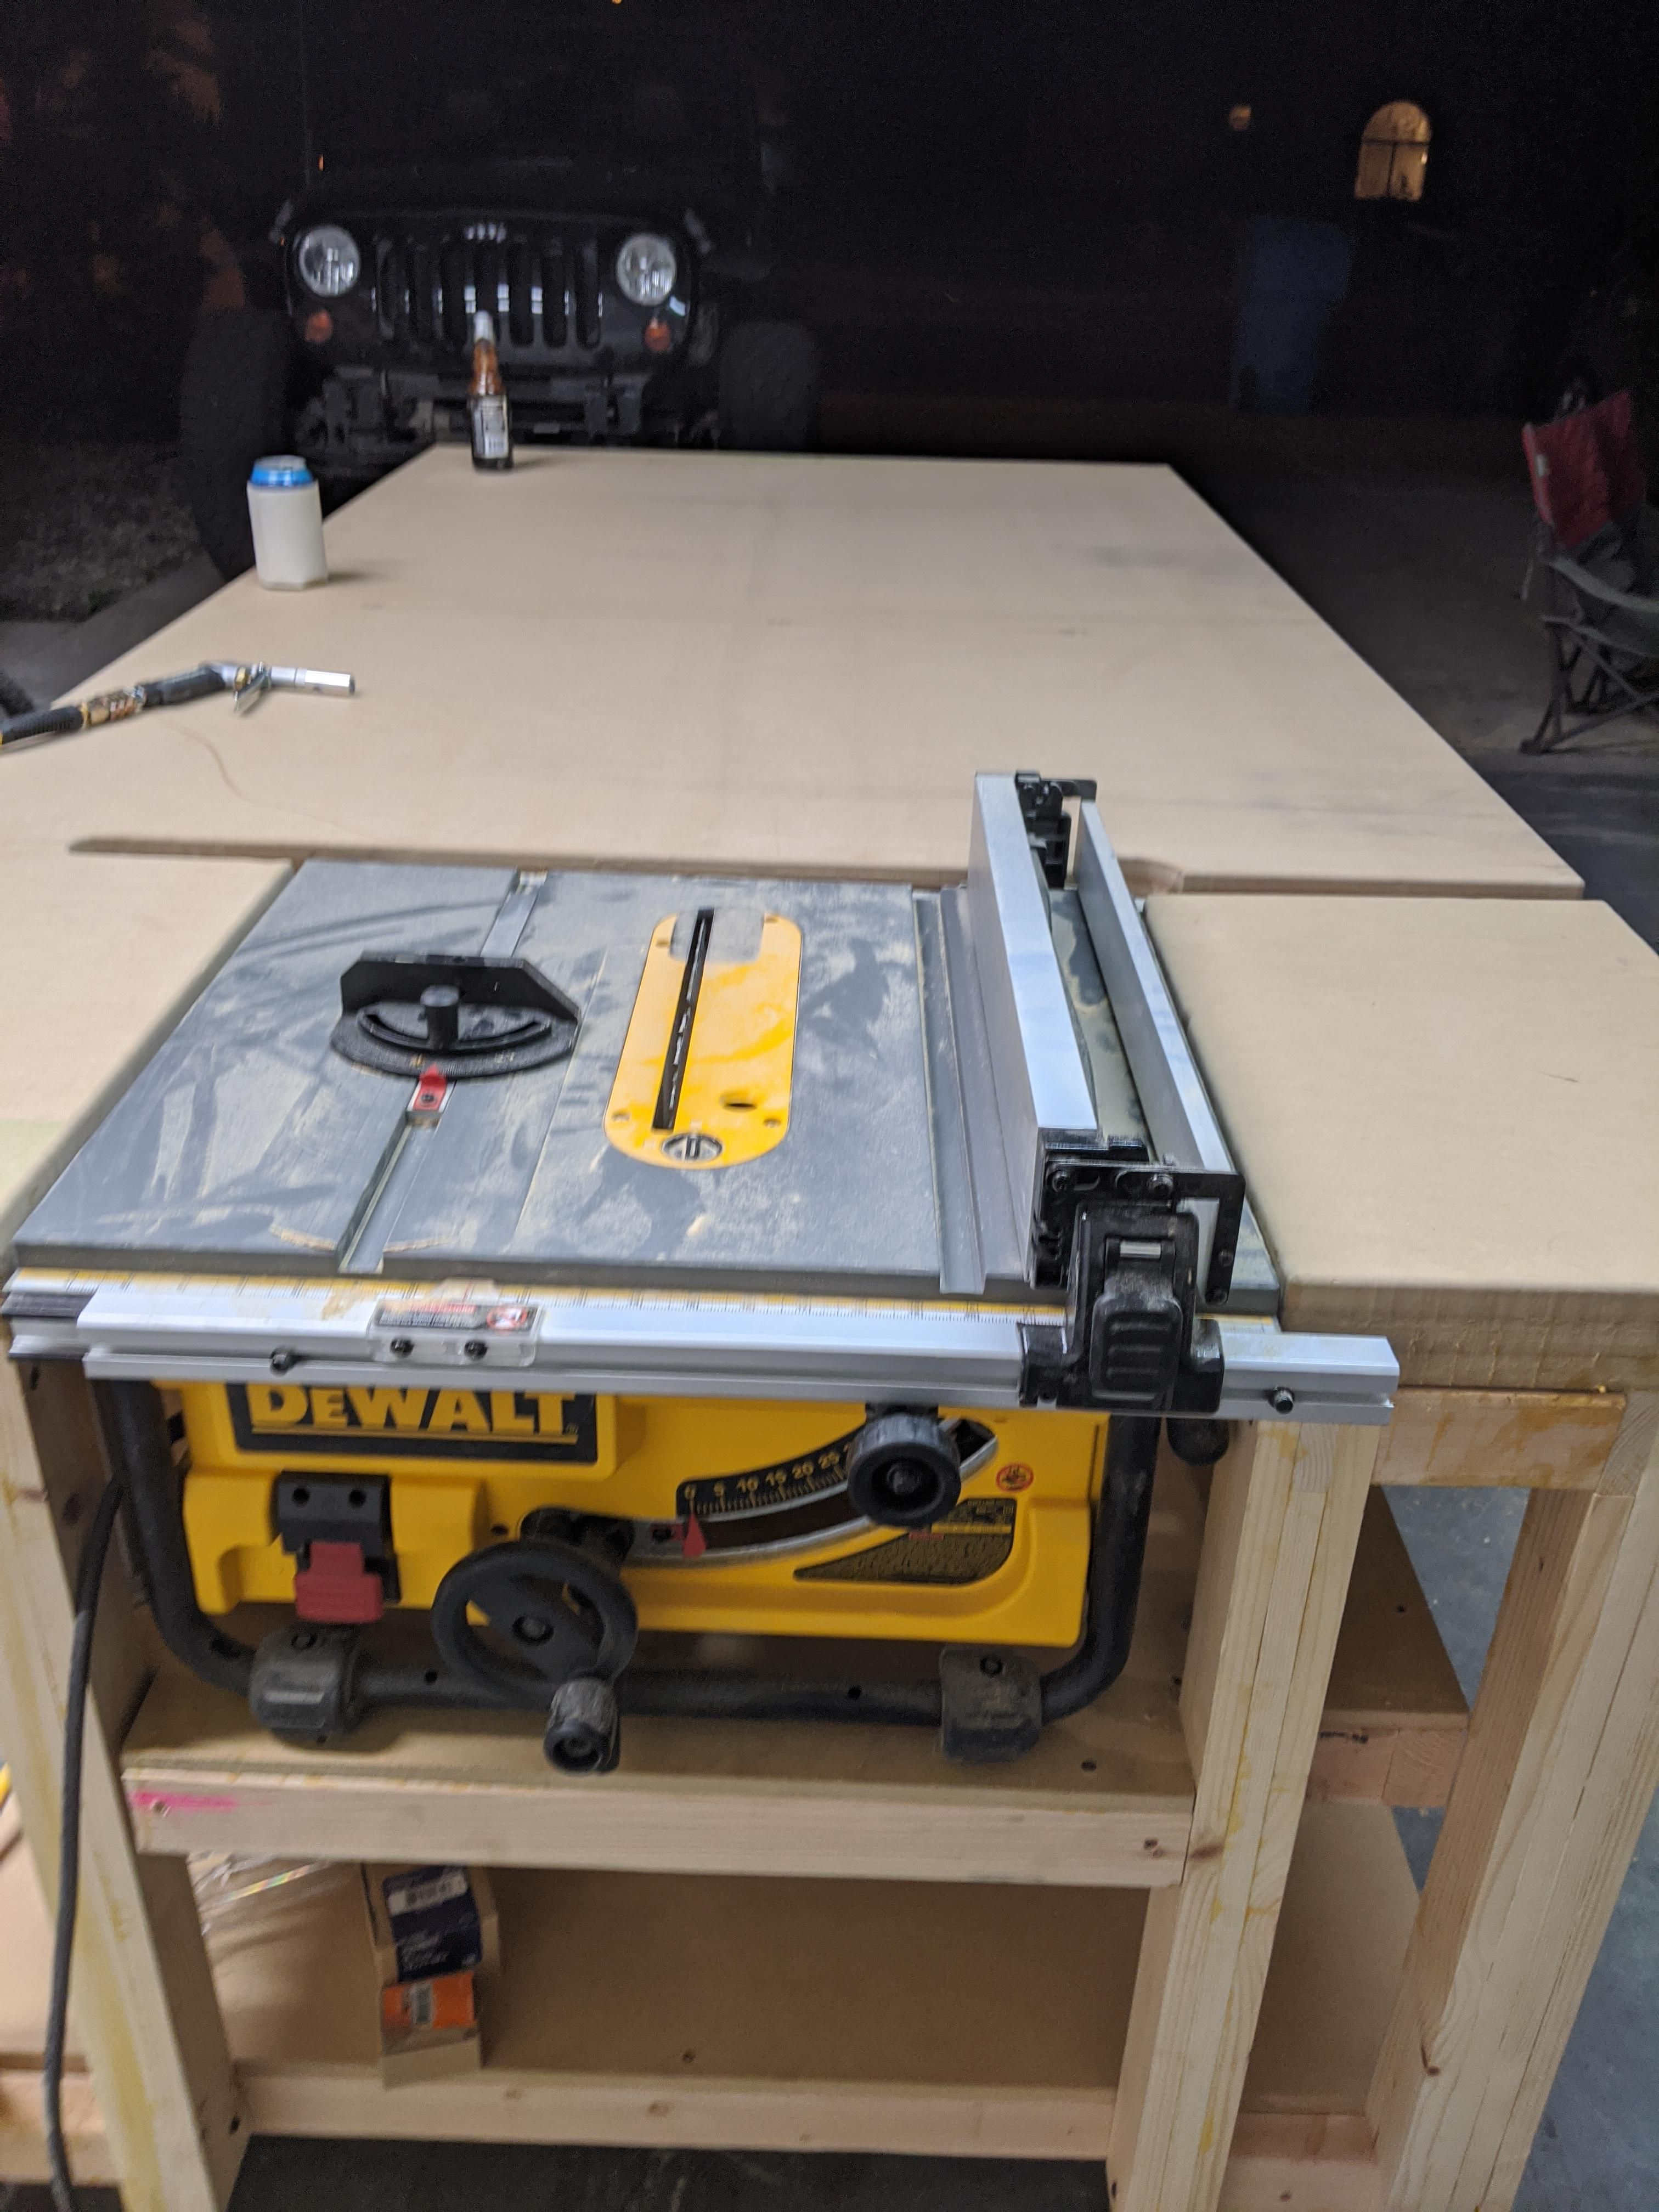 Almost Finished My Table Saw Outfeed Assembly Table Https Ift Tt 38le8ov In 2020 Assembly Table Woodworking Joinery Woodworking